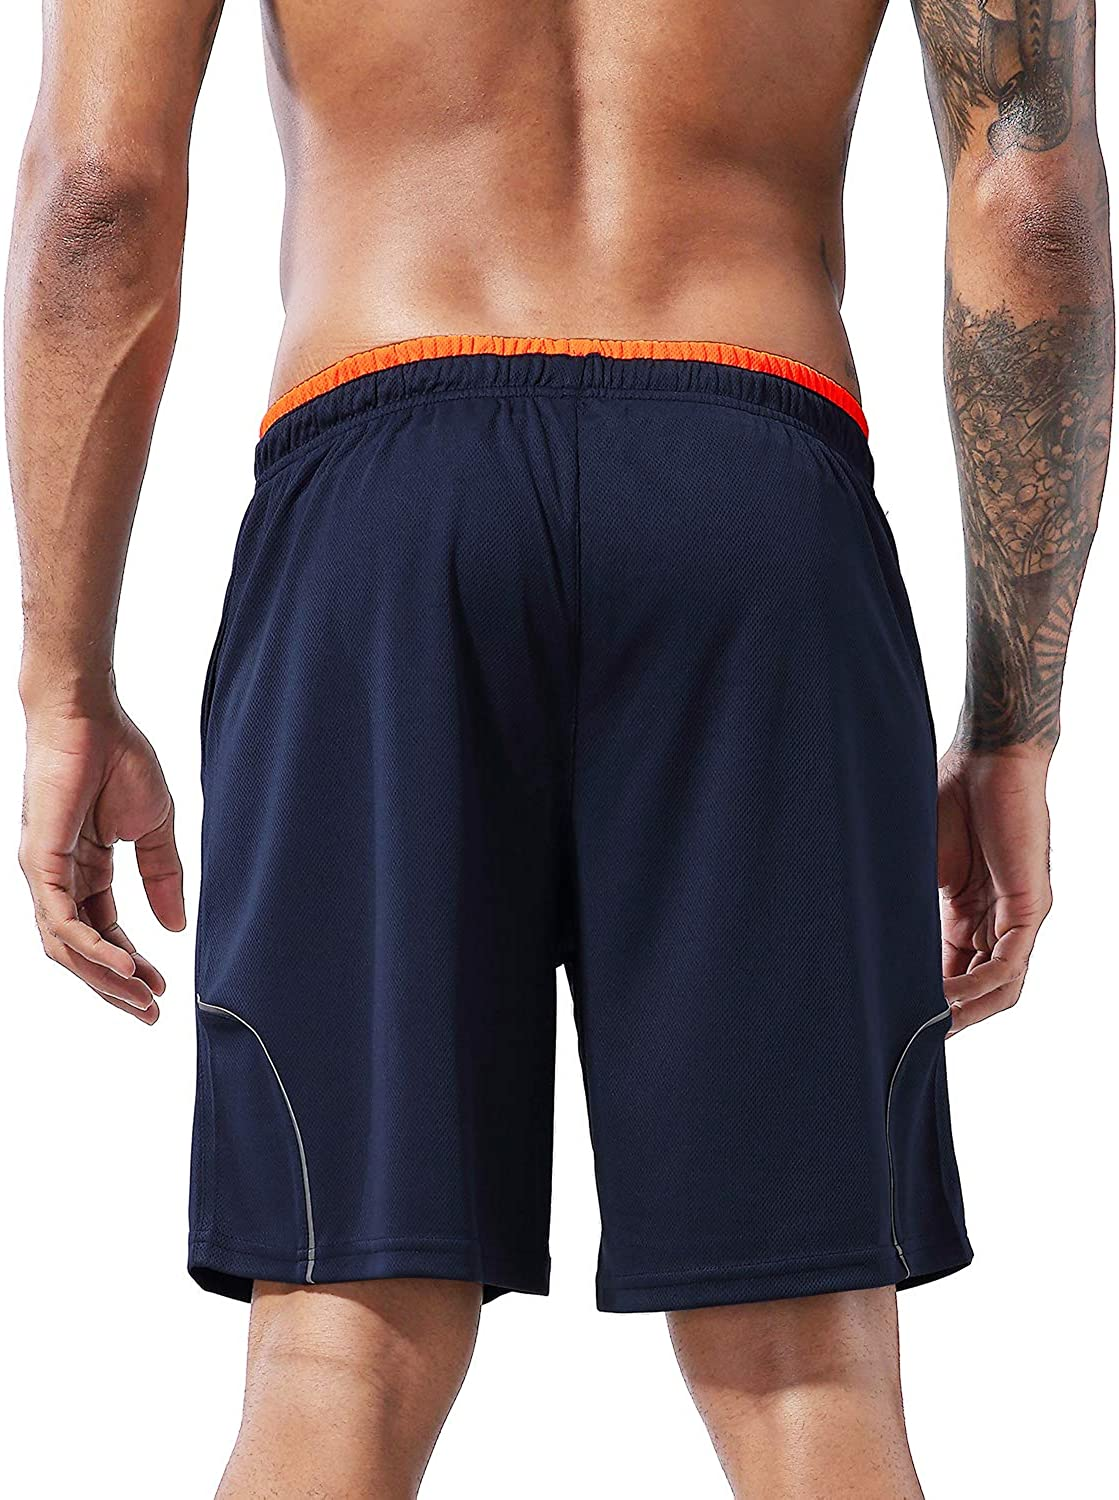 """1994Fashion Mens Running Shorts Gym Athletic Shorts with Pockets Quick Dry 7/""""for Sports,Trainning,Workout"""